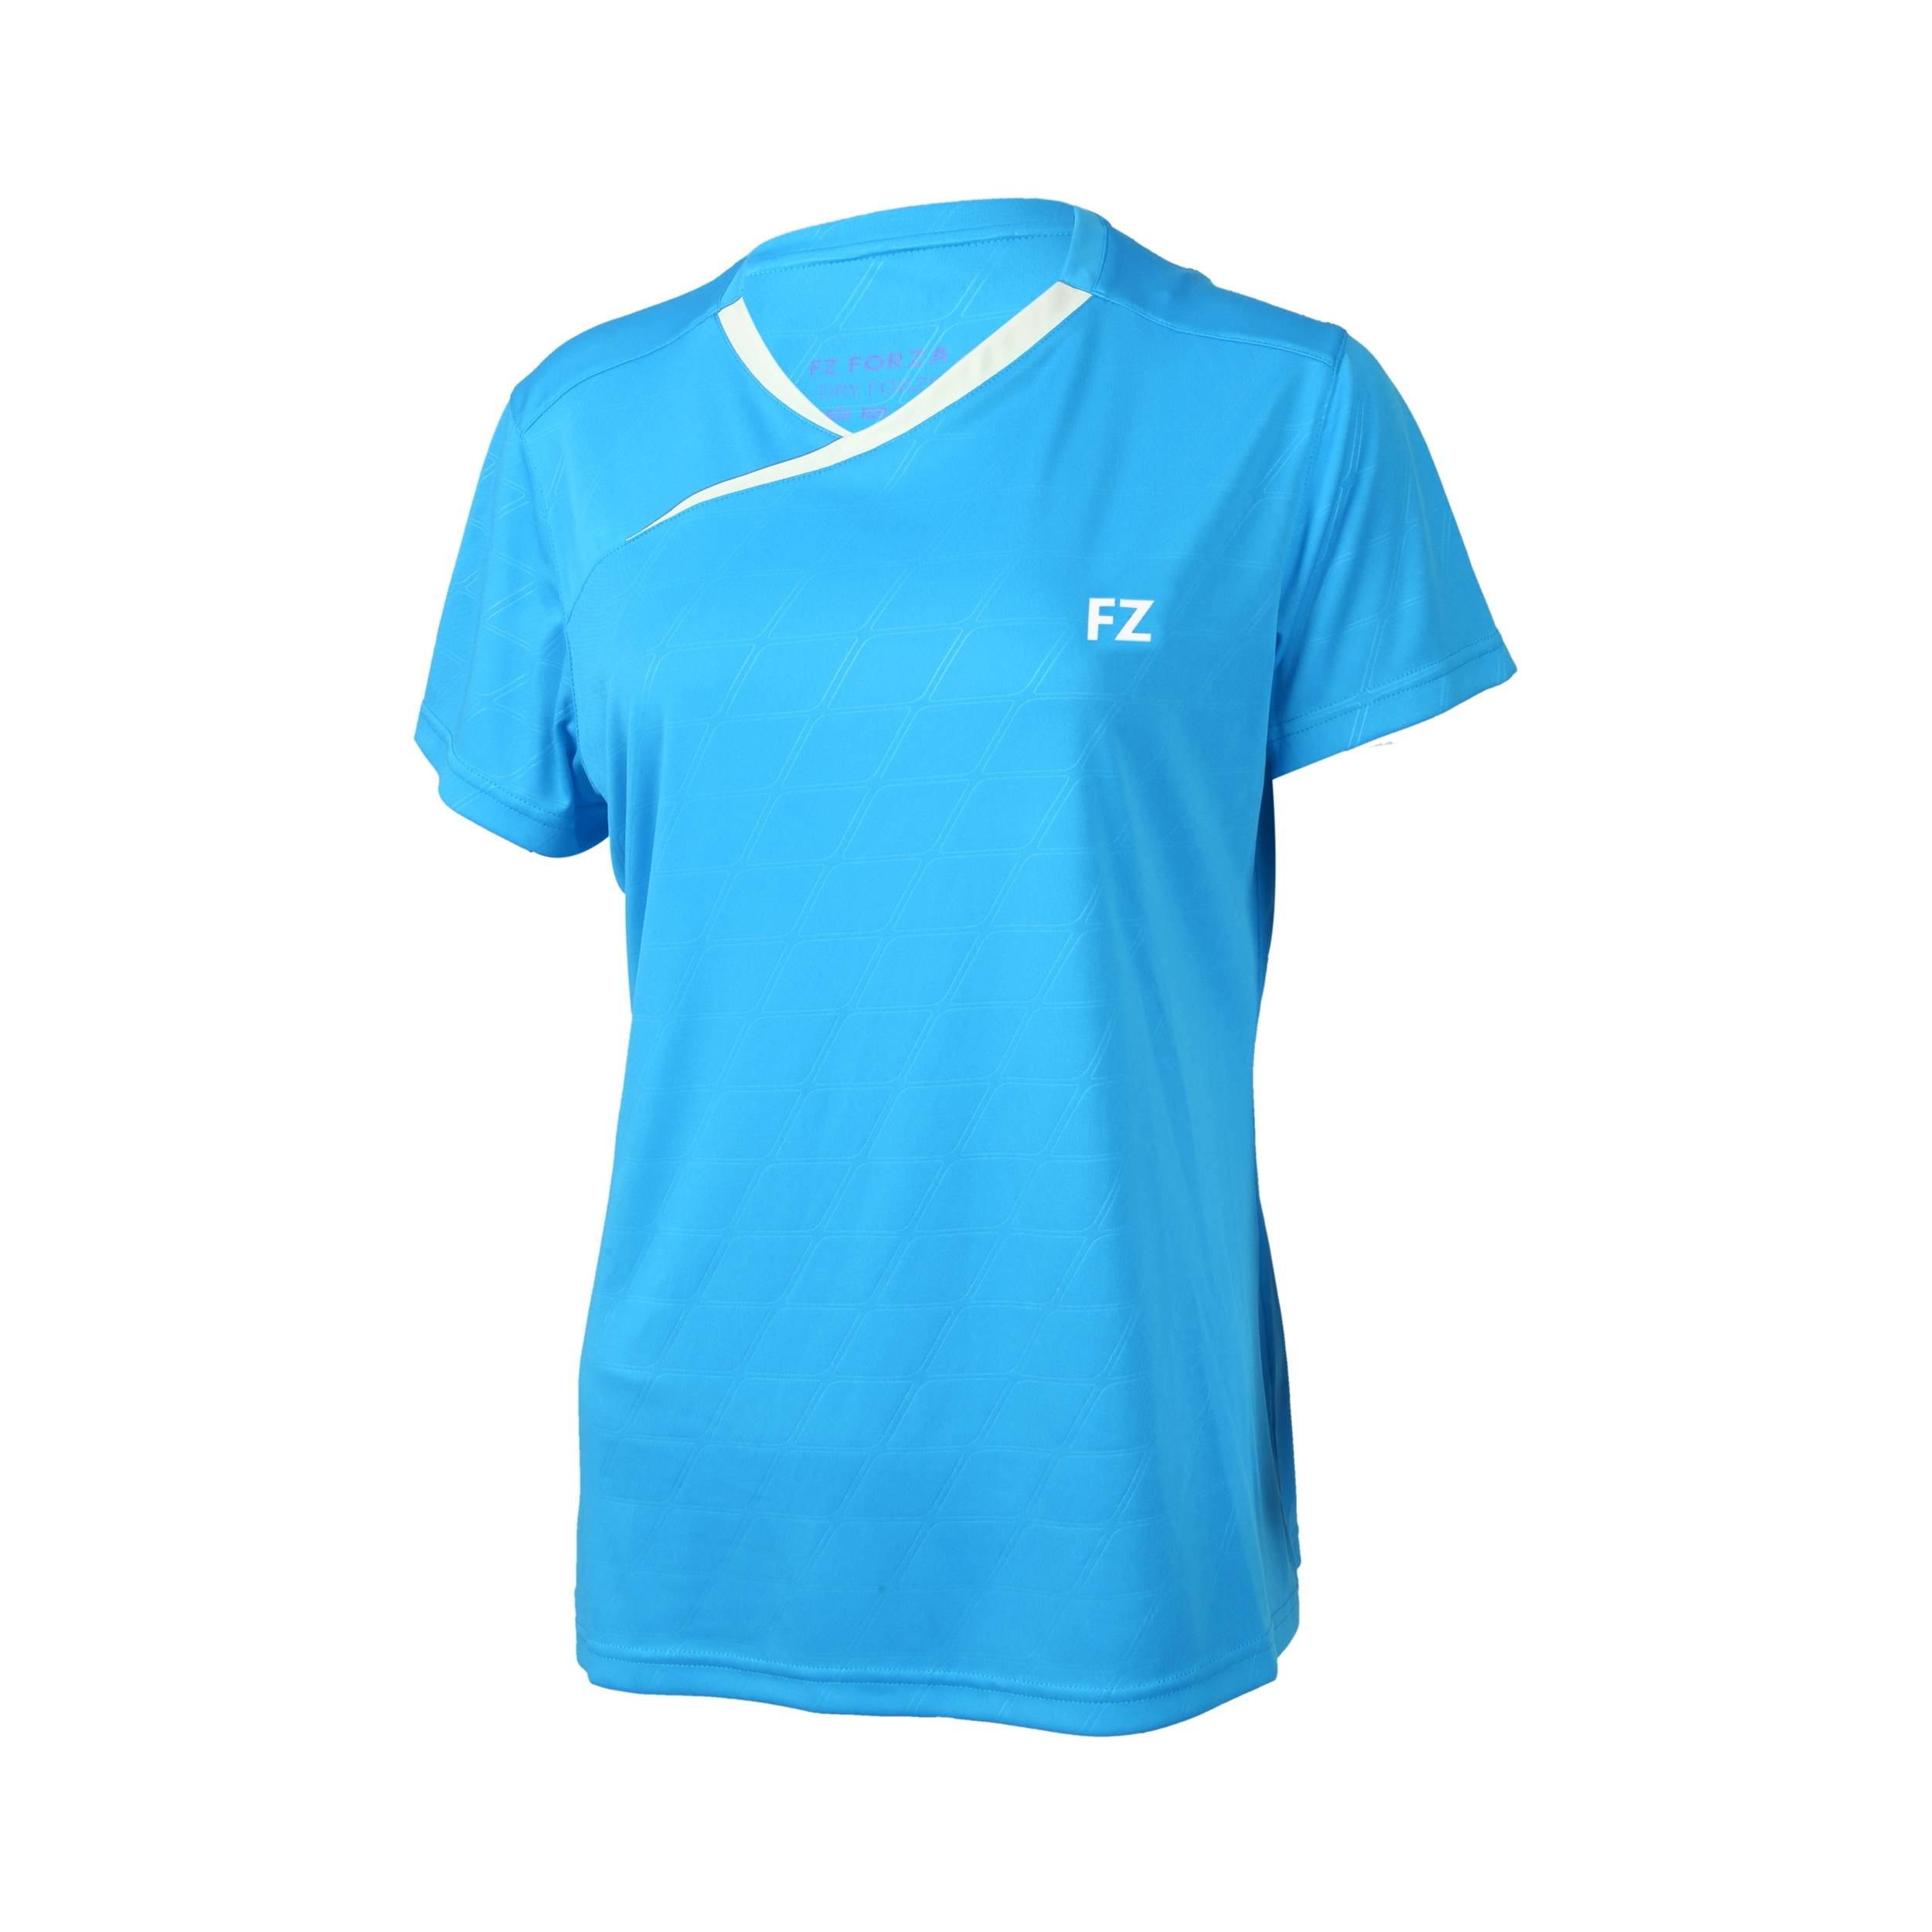 FZ Forza Blues Tee Women Atomic Blue S